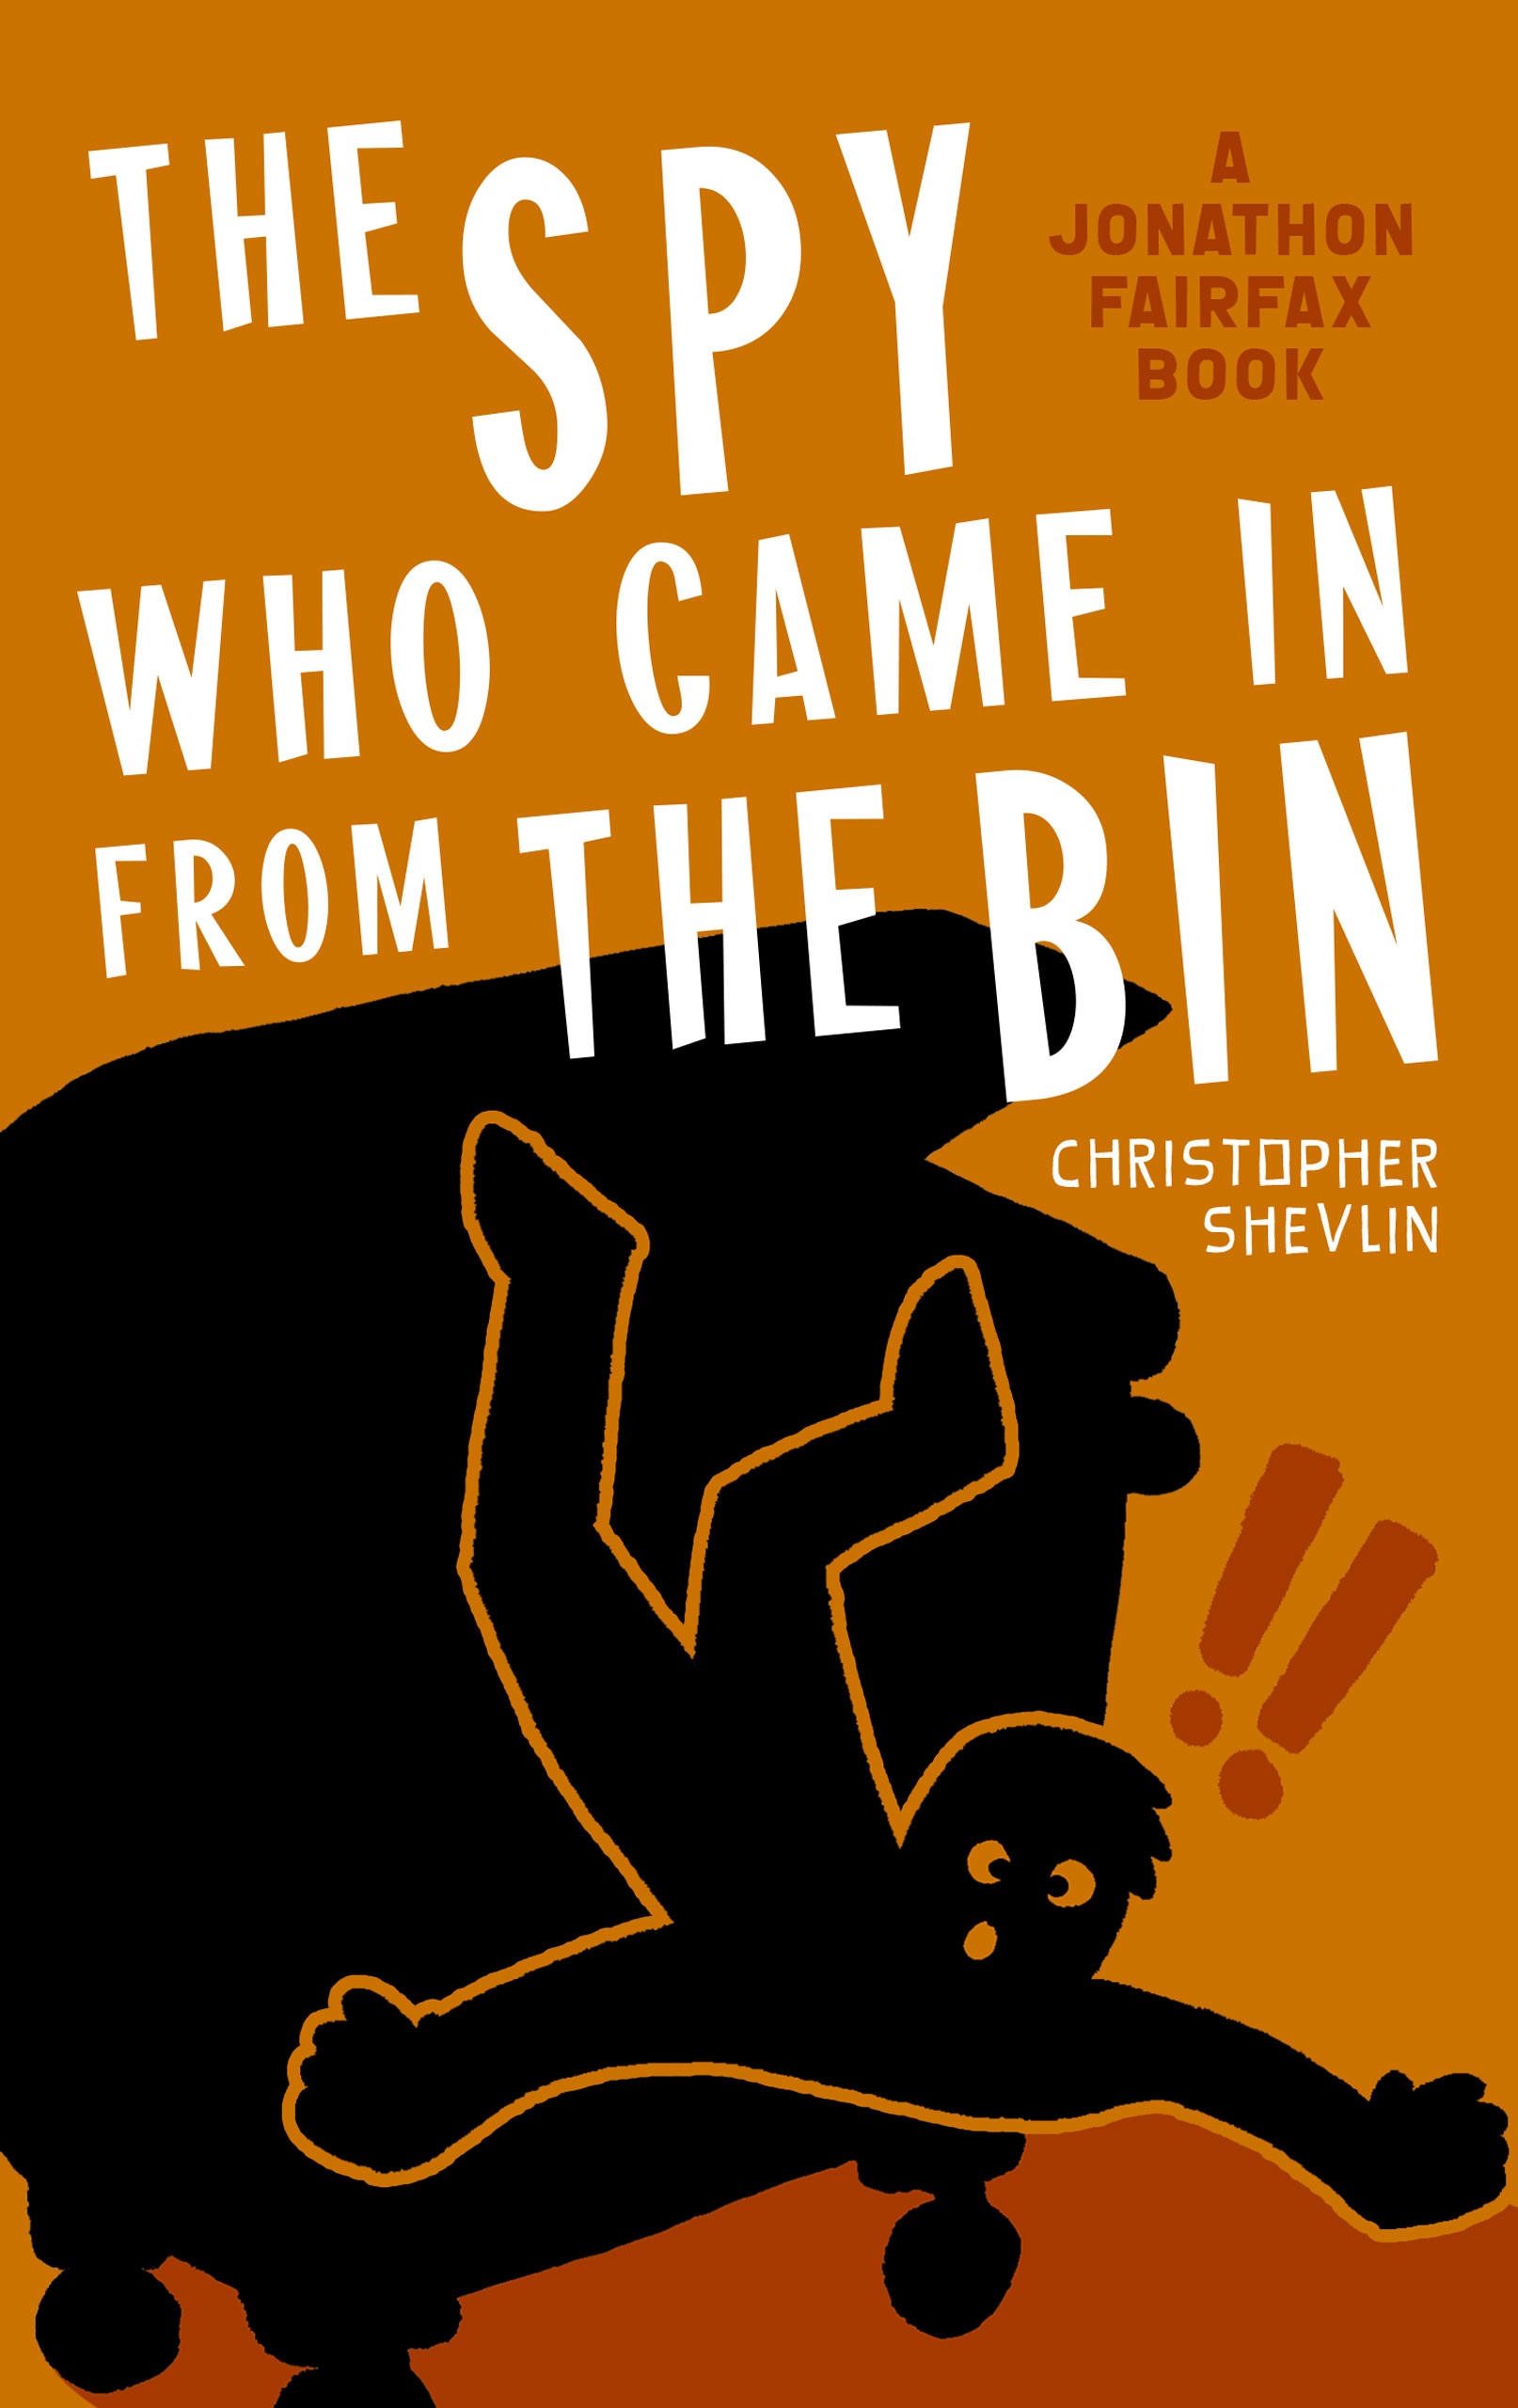 Prototype cover for The Spy Who Came in from the Bin